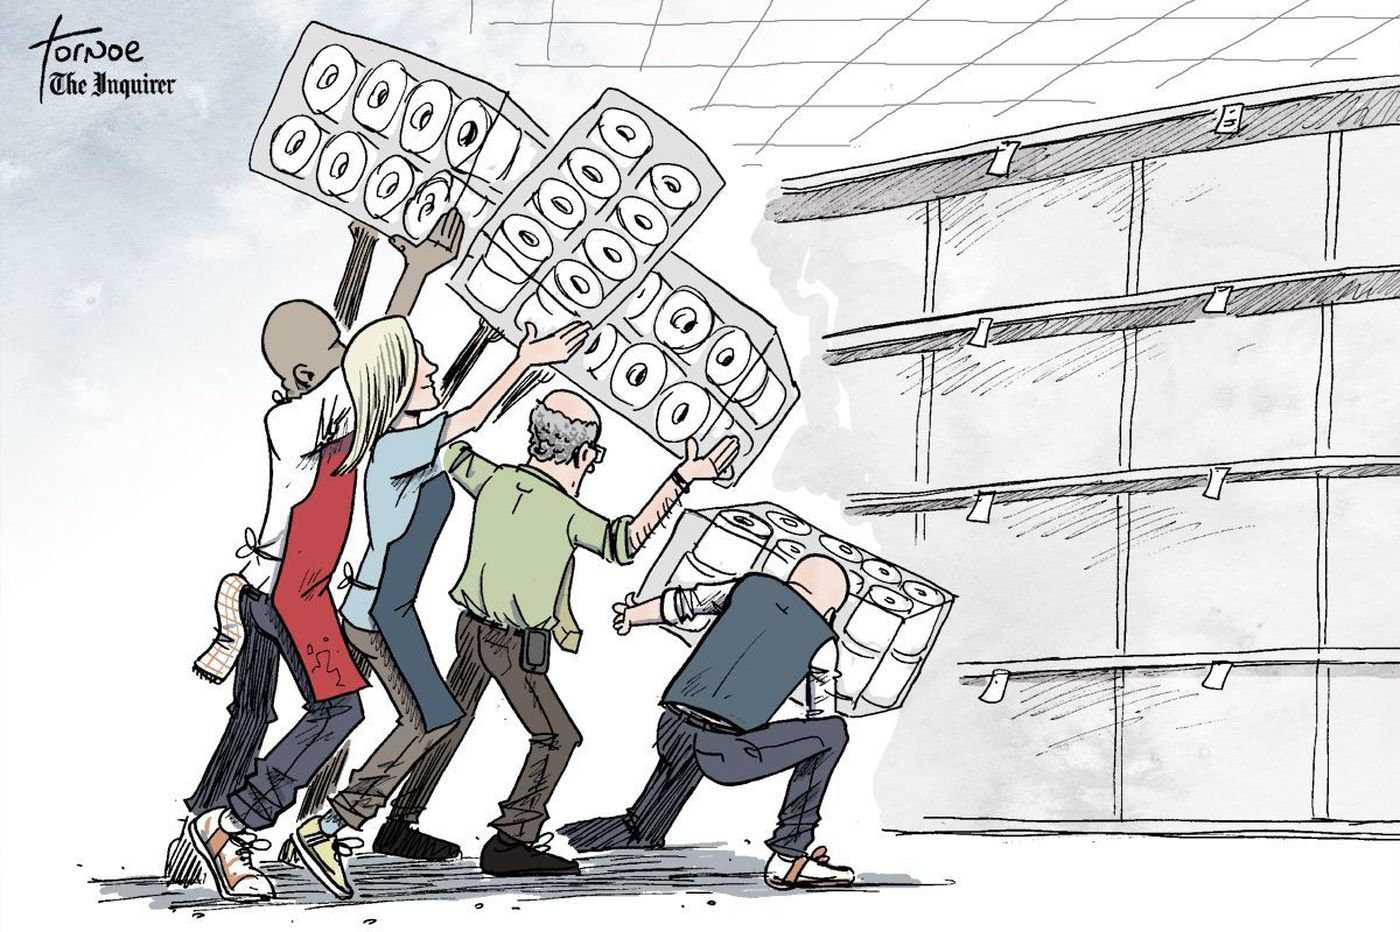 Coronavirus cartoon: Grocery store workers are on the front lines, too